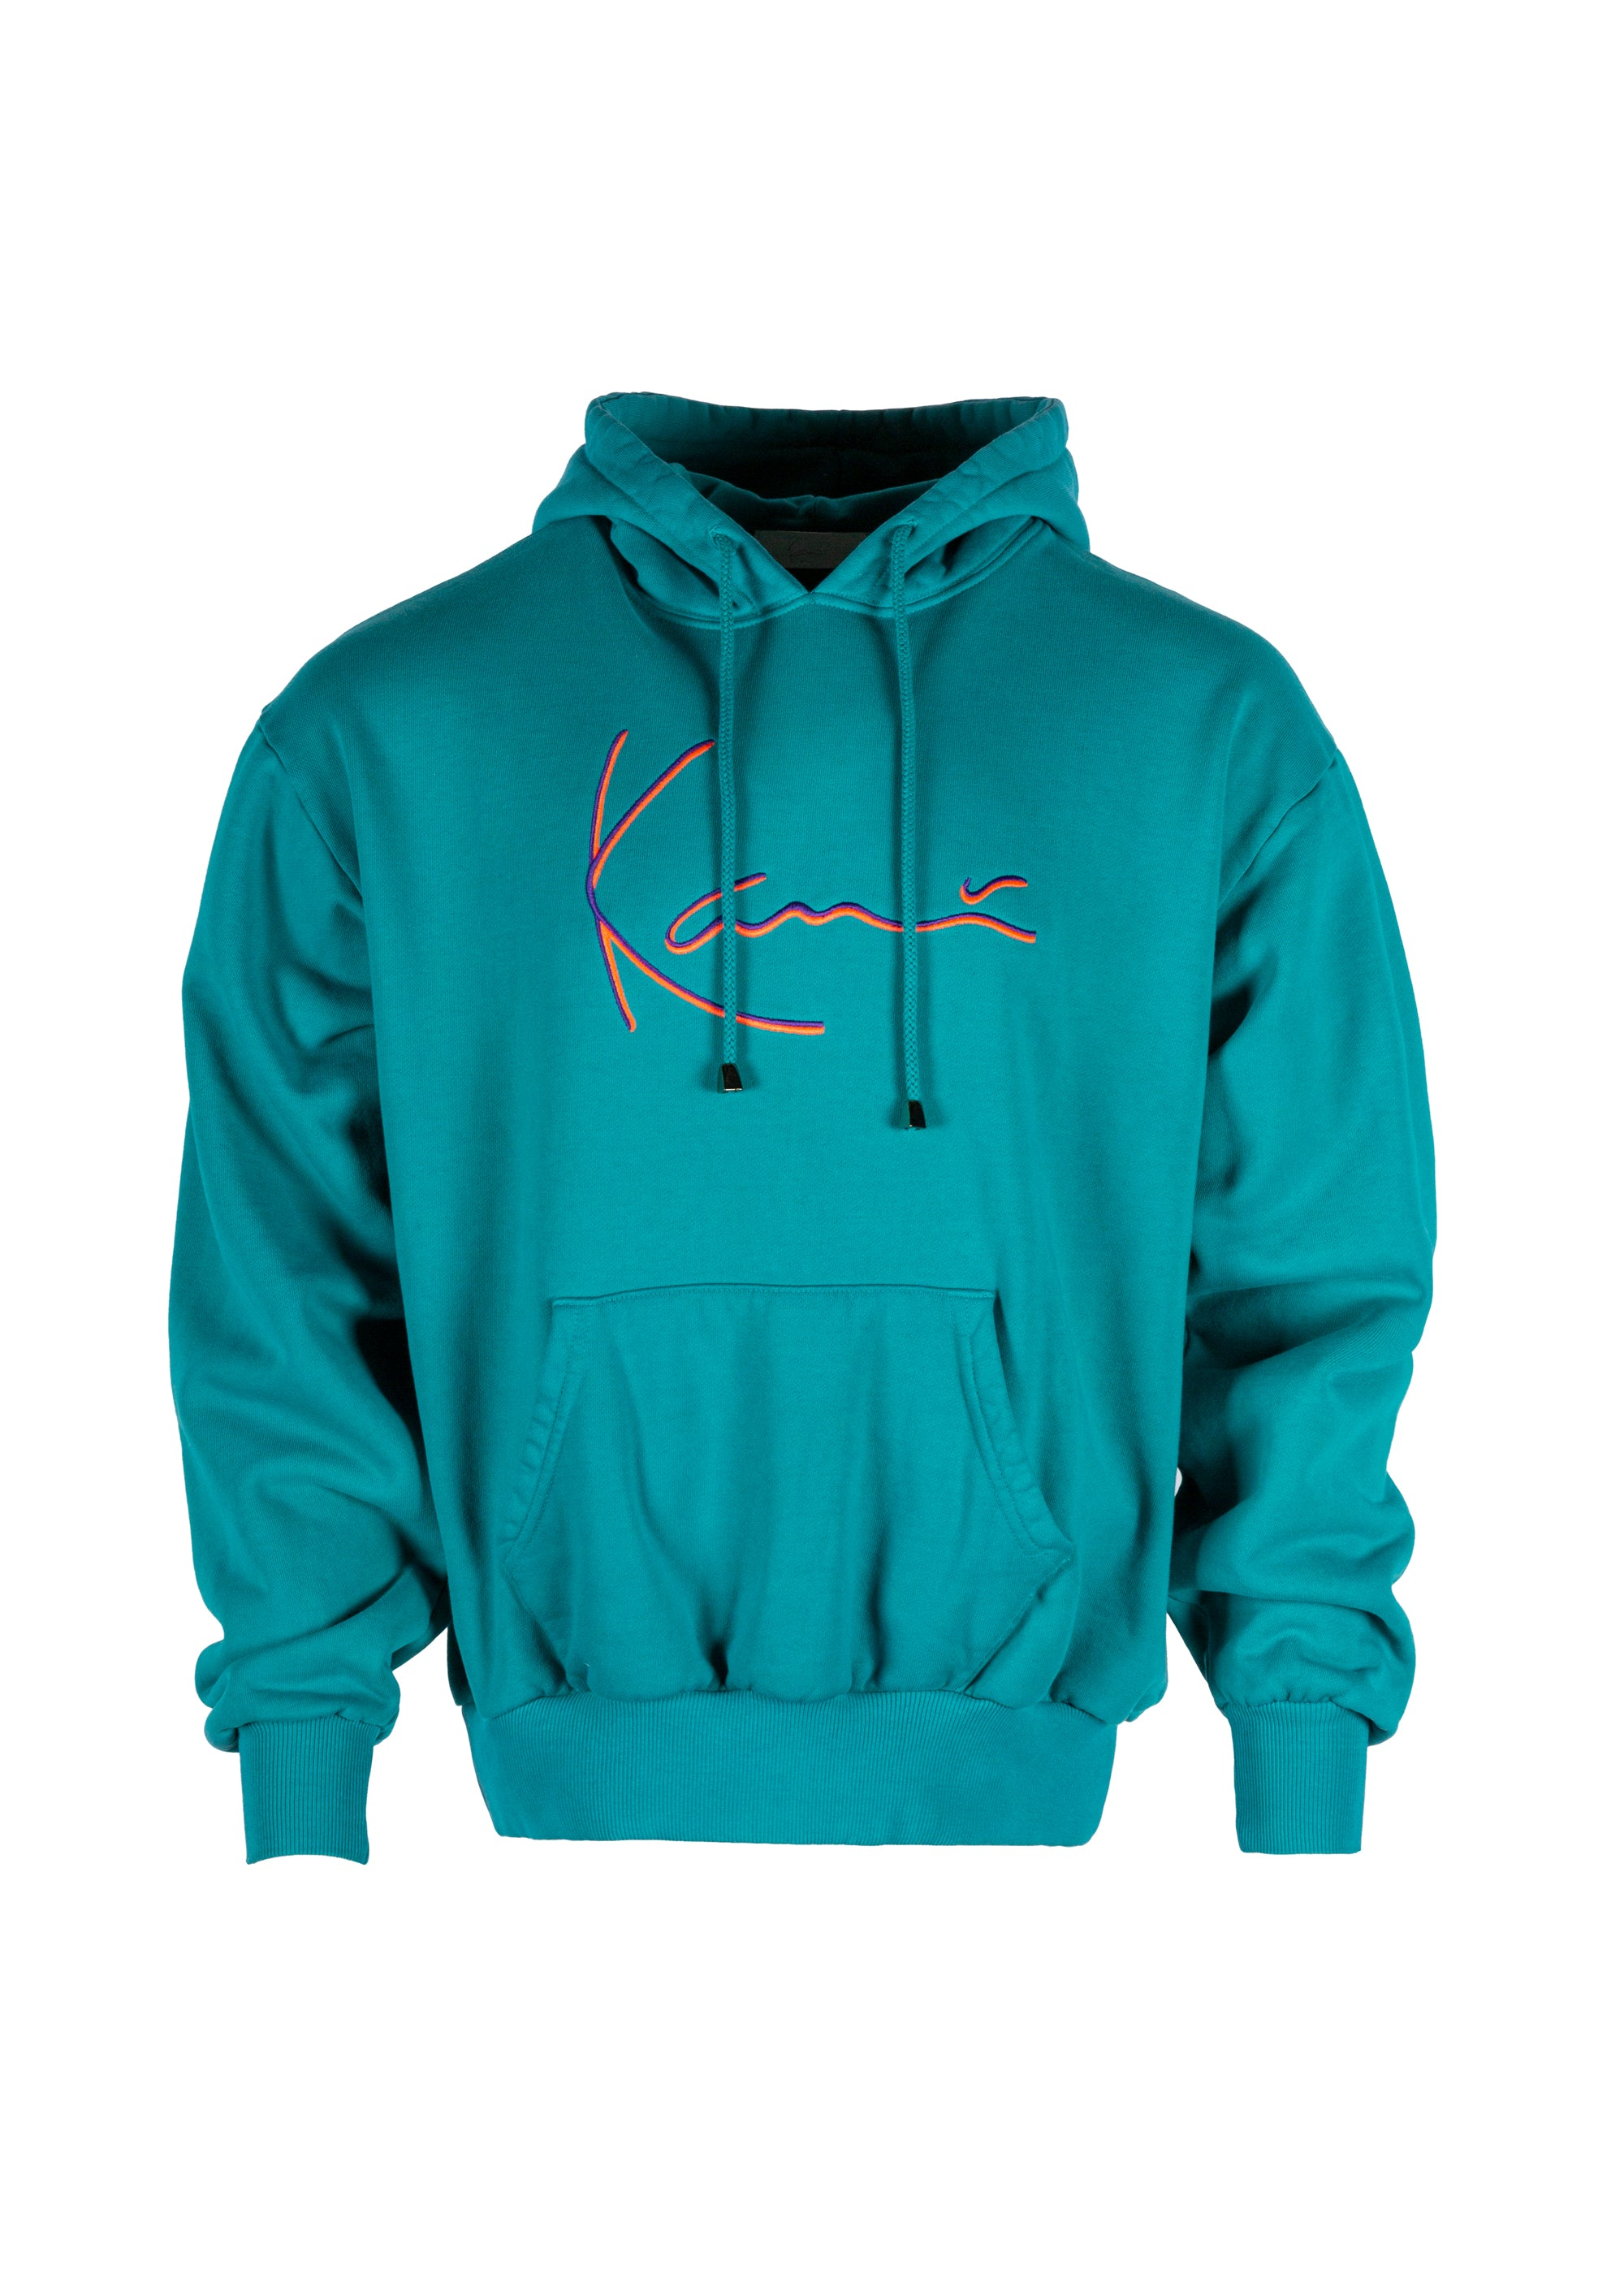 Hit Em Up Hoodie Teal